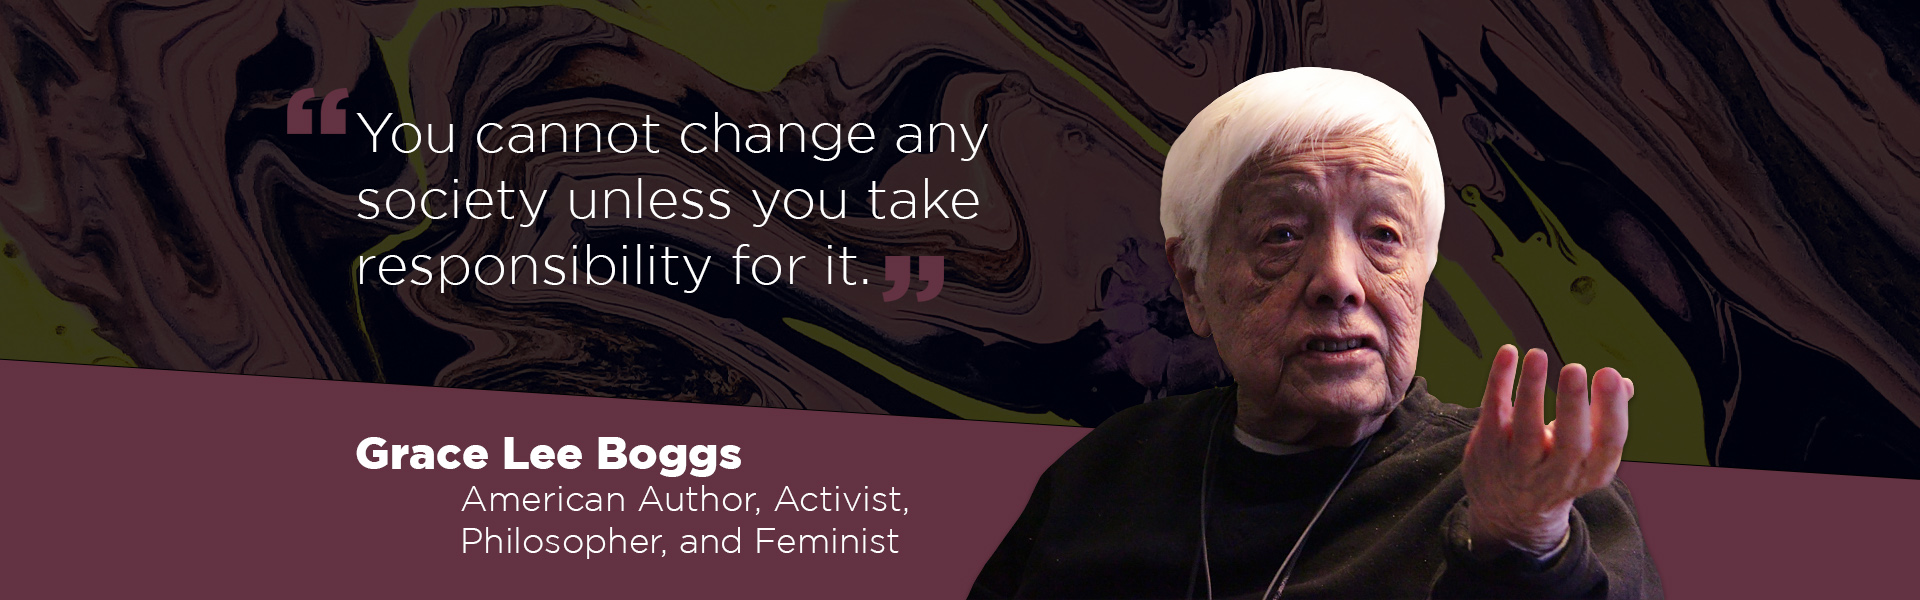 """""""You cannot change any society unless you take responsibility for it."""" - Grace Lee Boggs, American author, activist, philosopher, and feminist"""